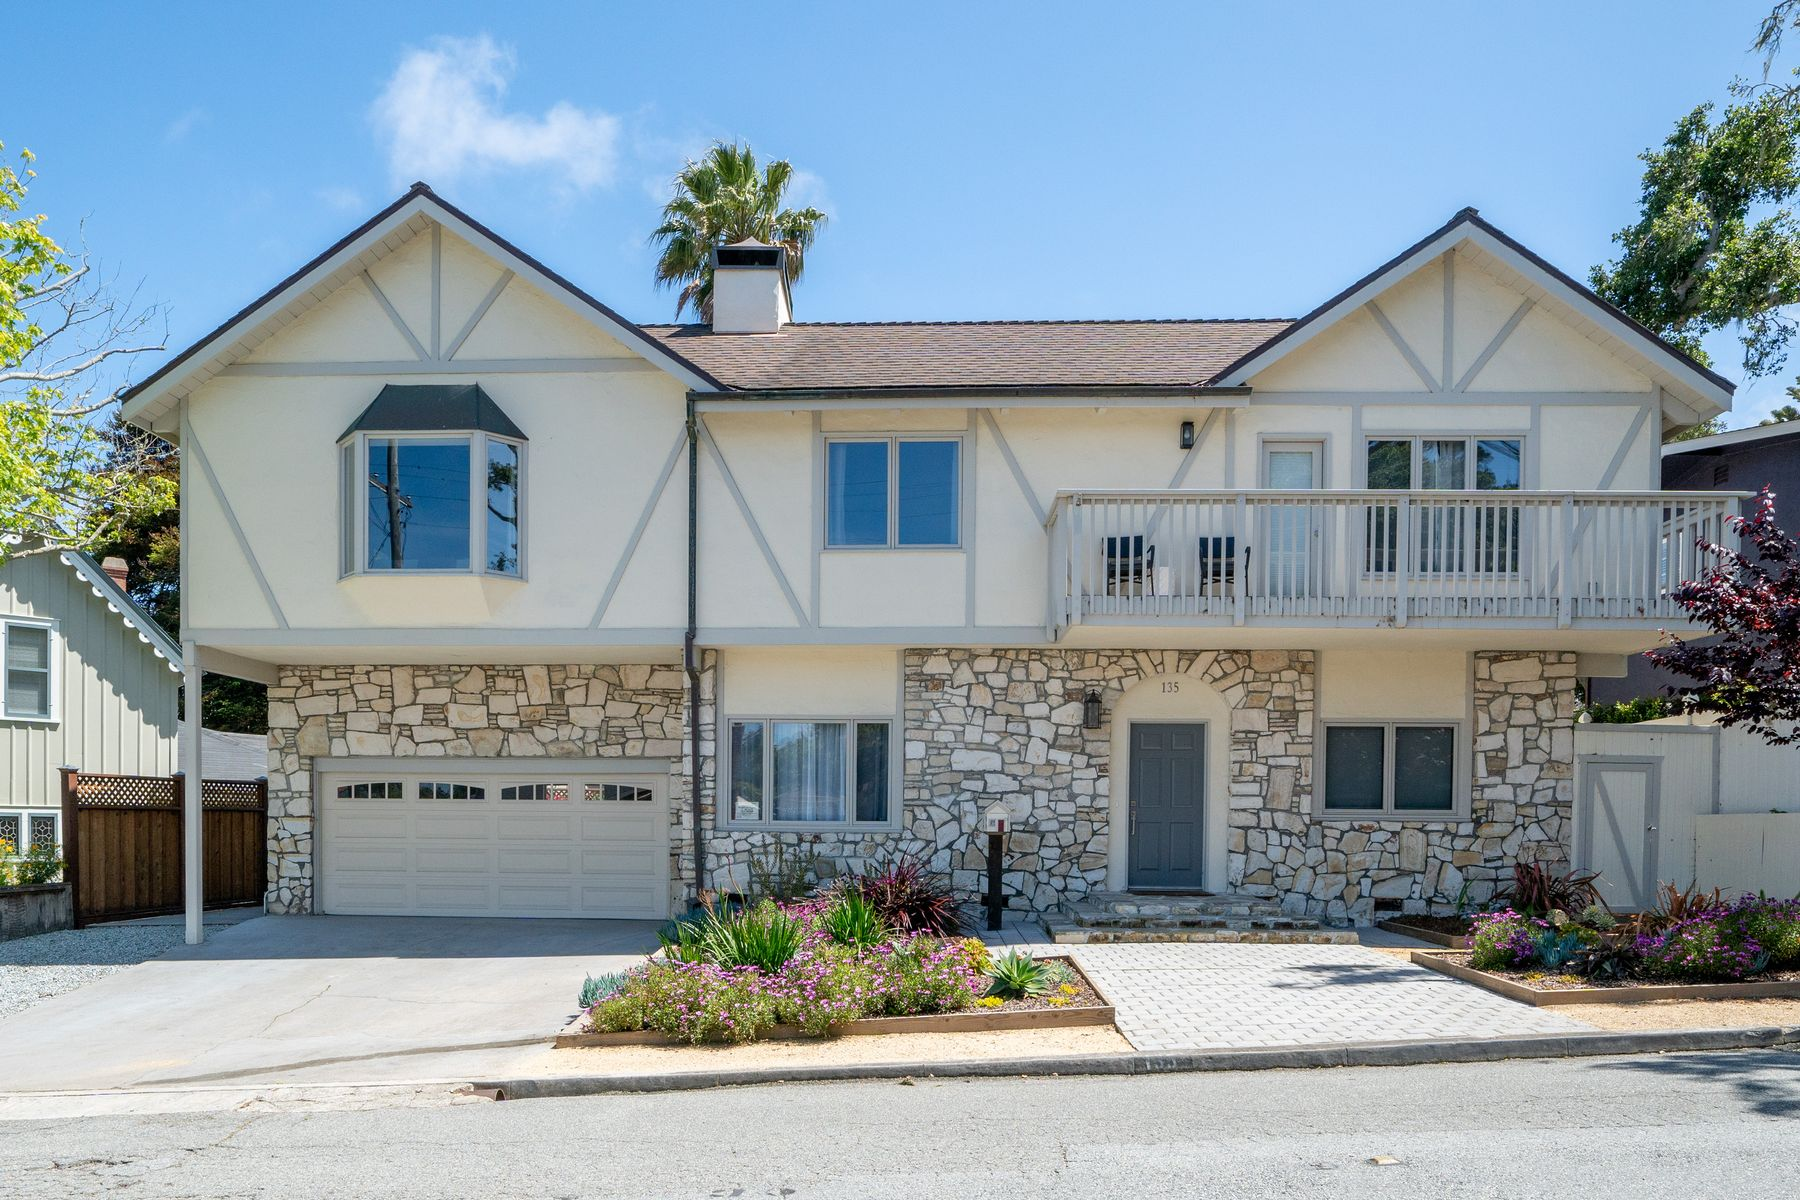 Single Family Homes for Sale at Excellent Seller Financing over 40-Yrs. 135 Pacific Avenue Pacific Grove, California 93950 United States